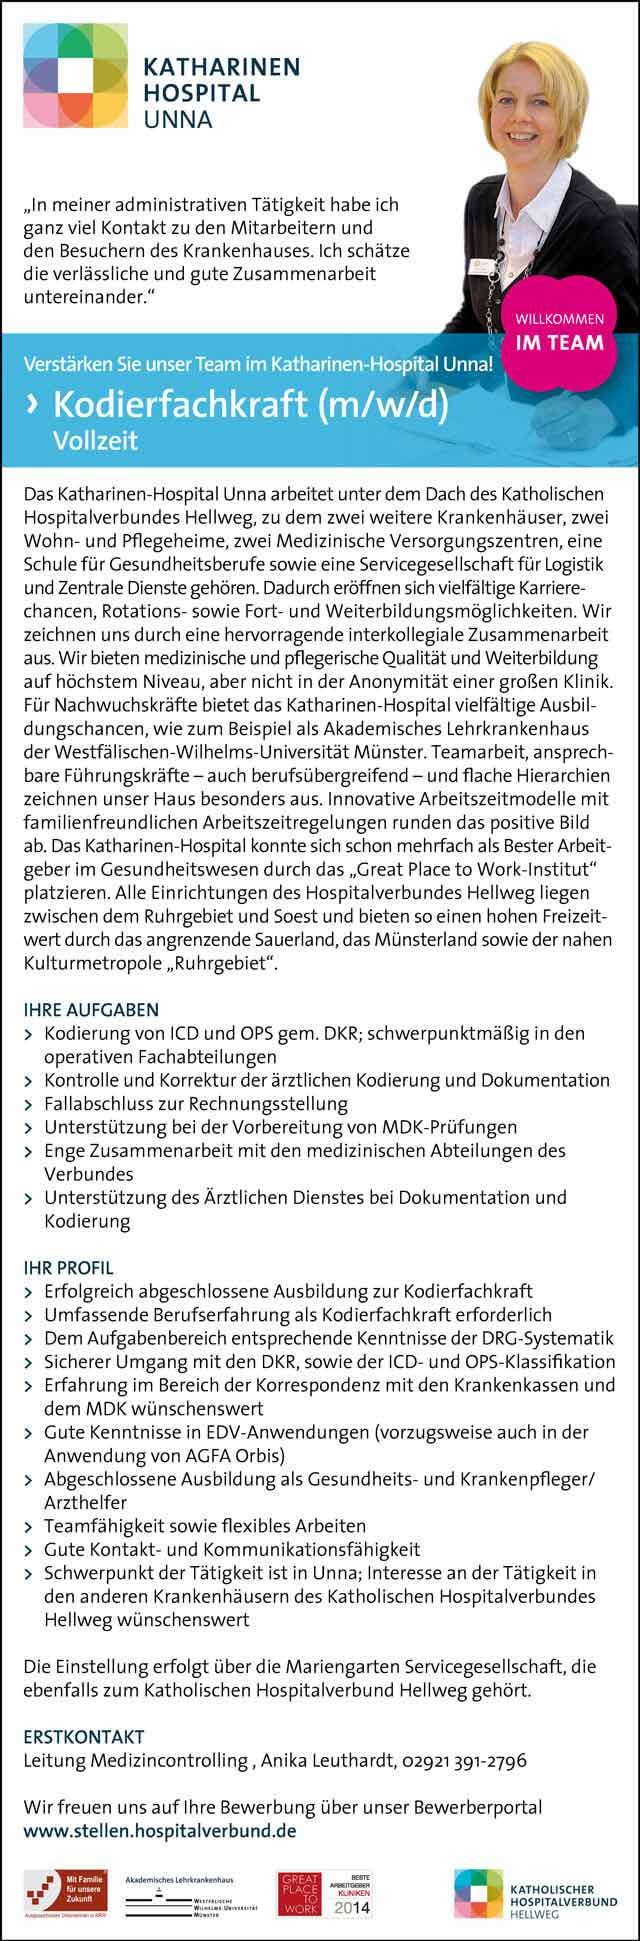 Katharinen-Hospital Unna: Kodierfachkraft (m/w/d)